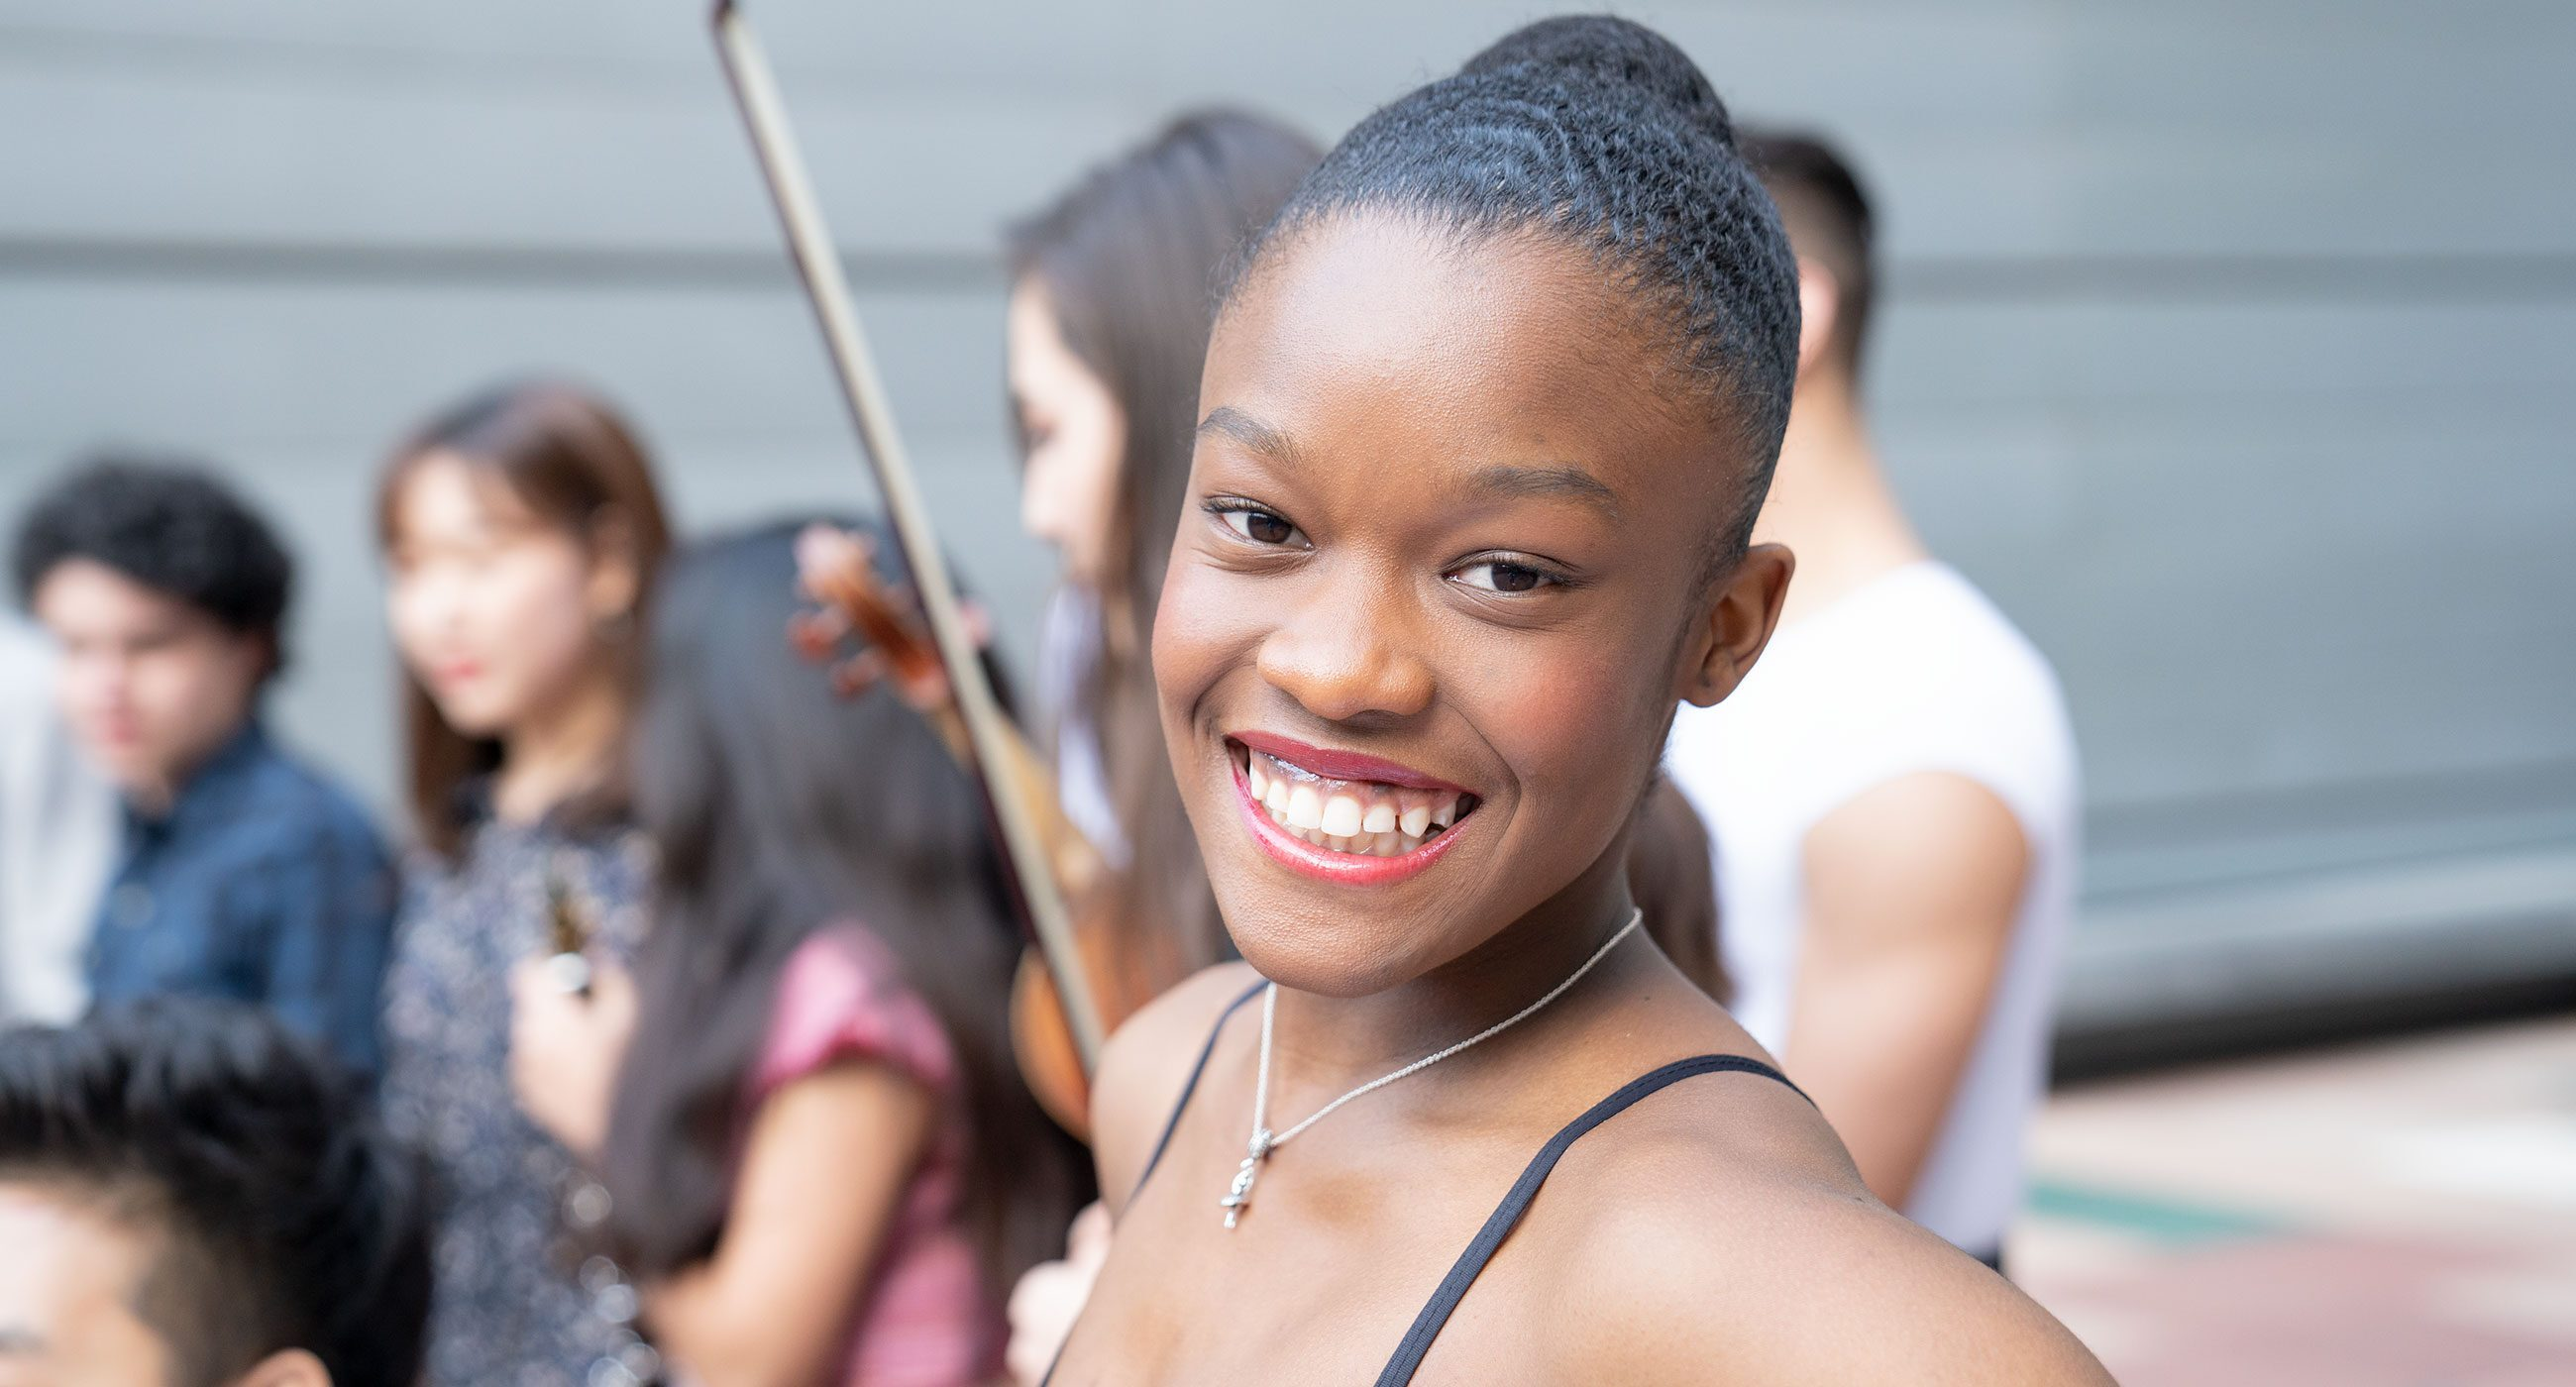 Dance Academy student smiling